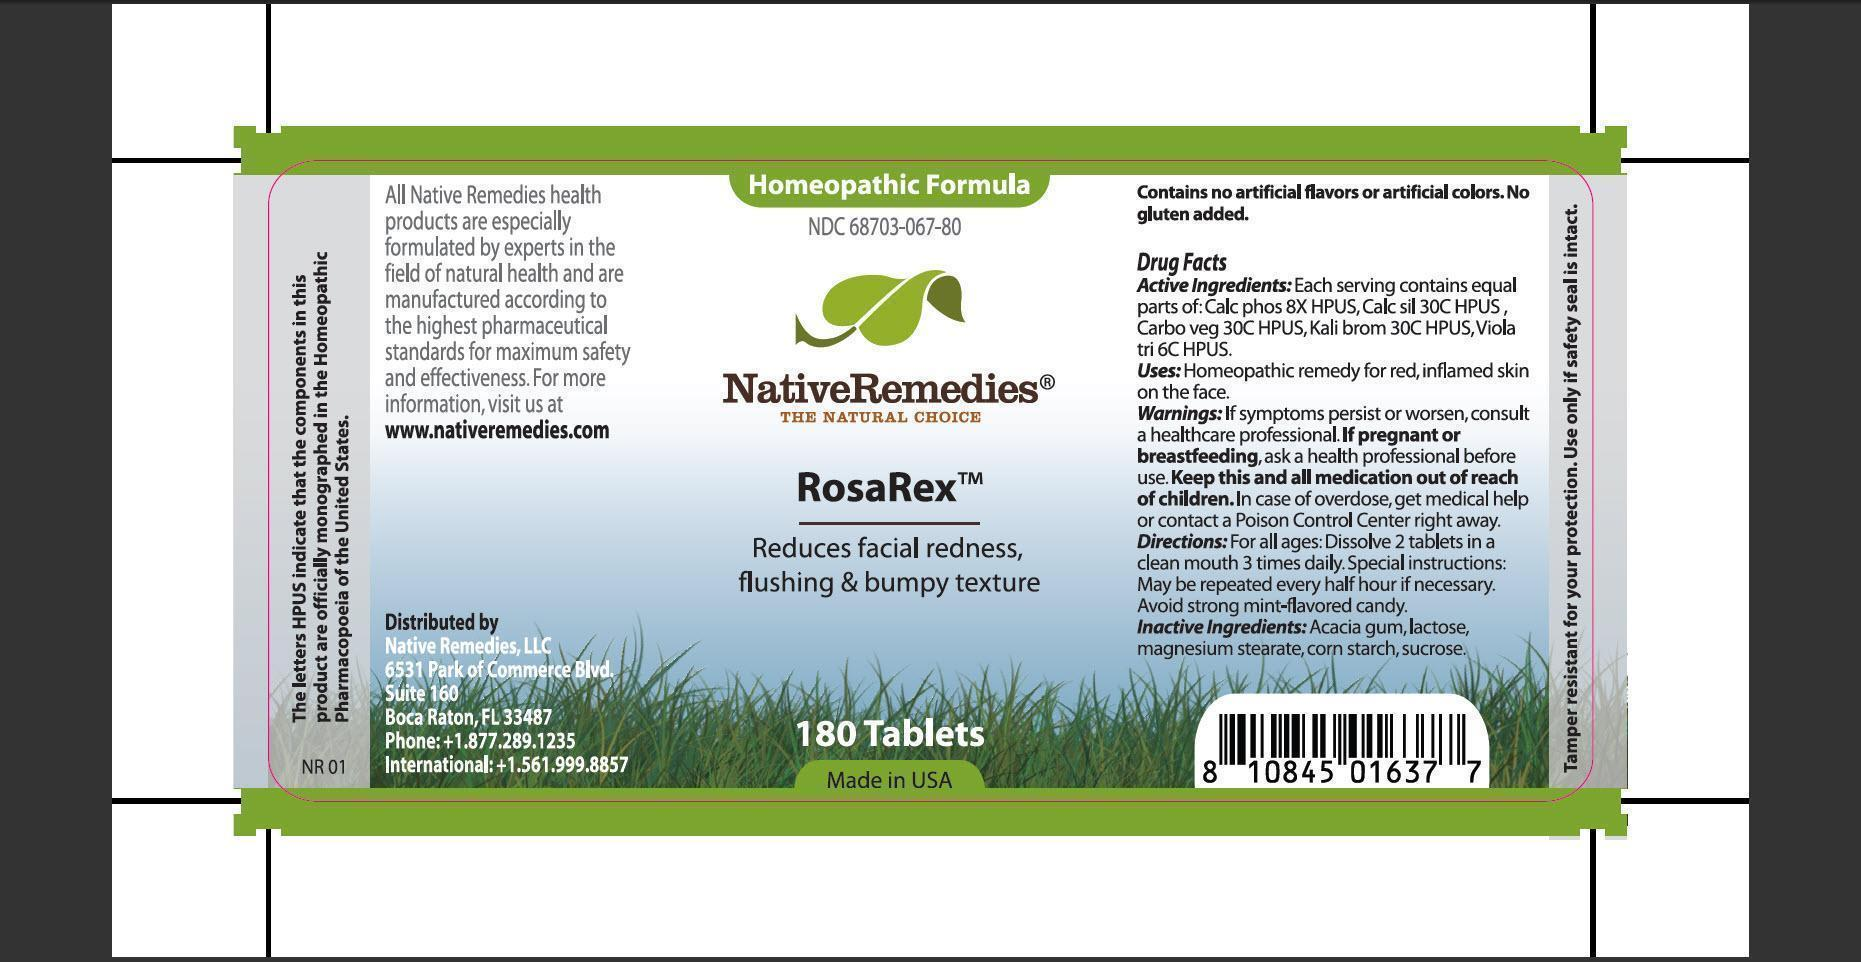 Rosarex (Calc Phos, Calc Sil, Carbo Veg, Kali Brom, Viola Tri) Tablet [Native Remedies, Llc]